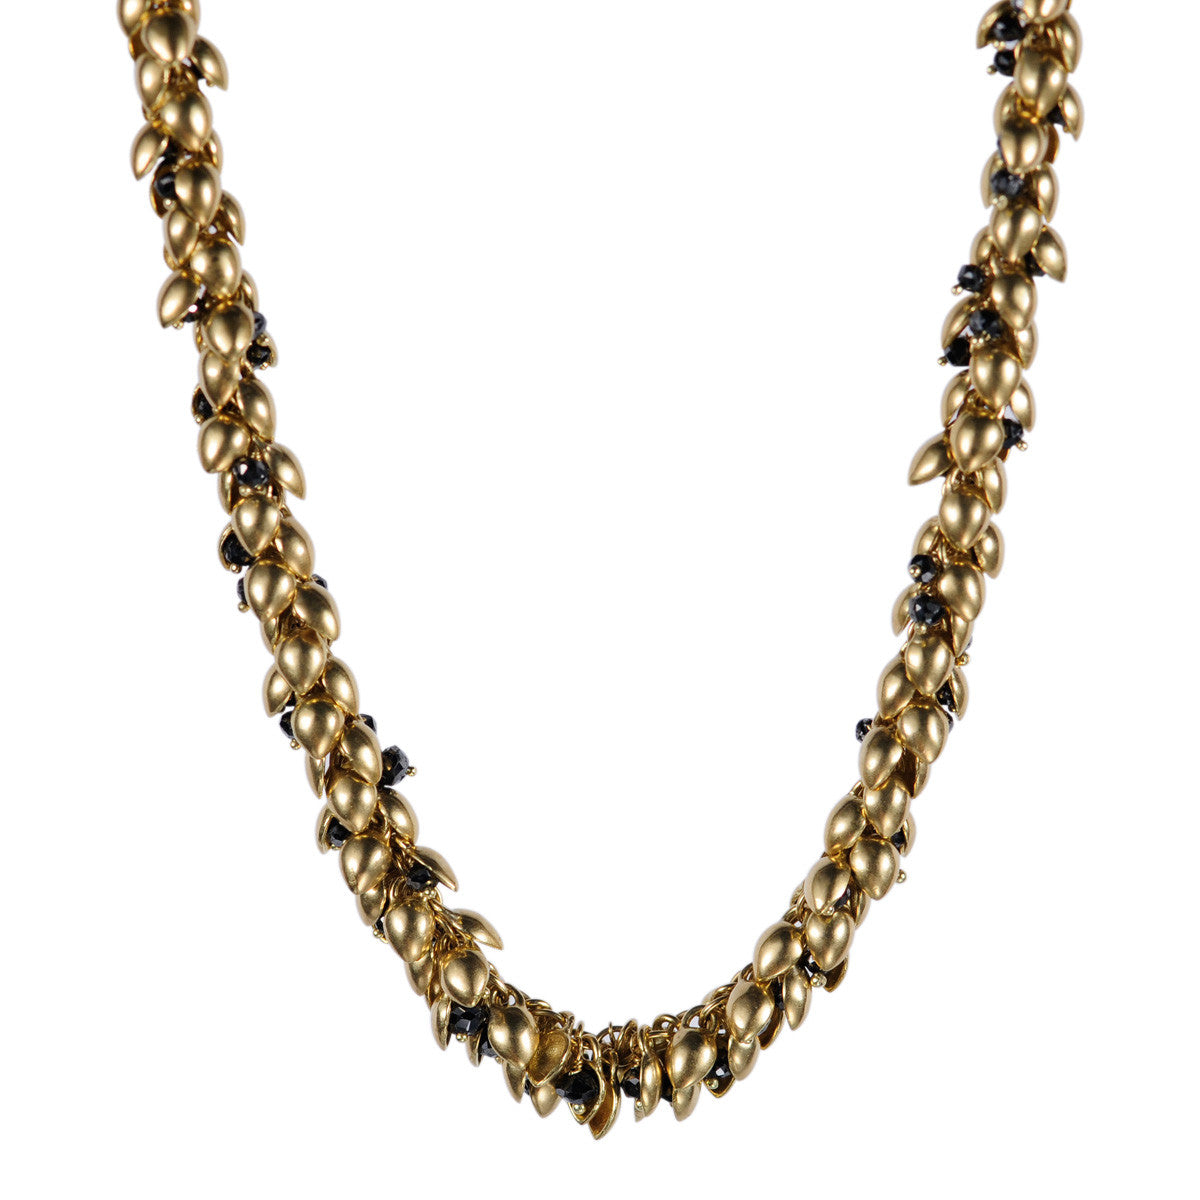 18K Gold All Bead Pod Necklace with Black Diamond Beads